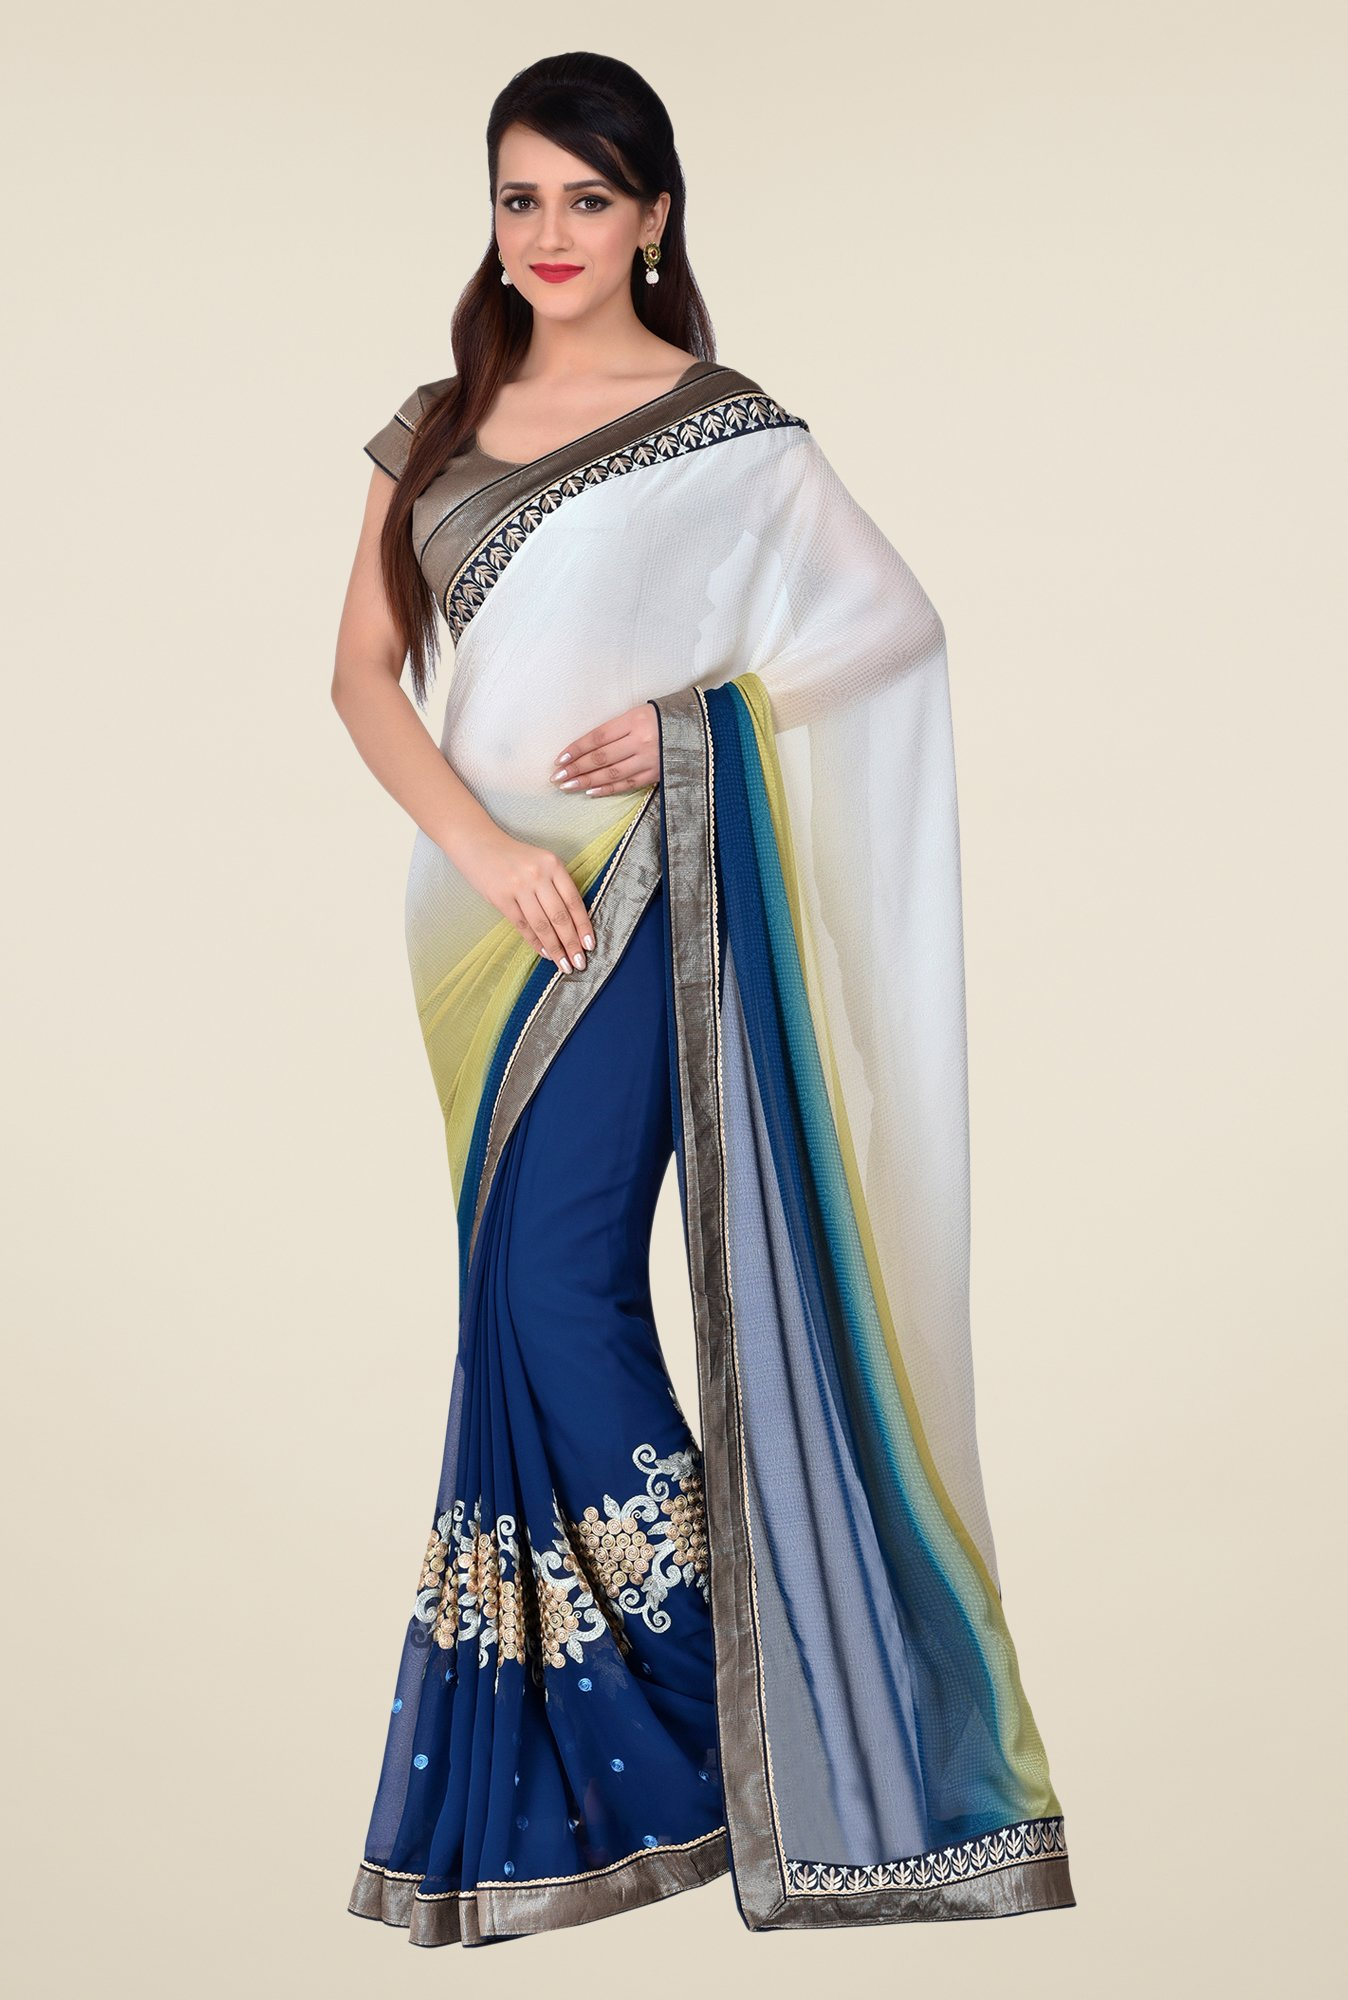 Shonaya Blue & White Georgette & Satin Saree